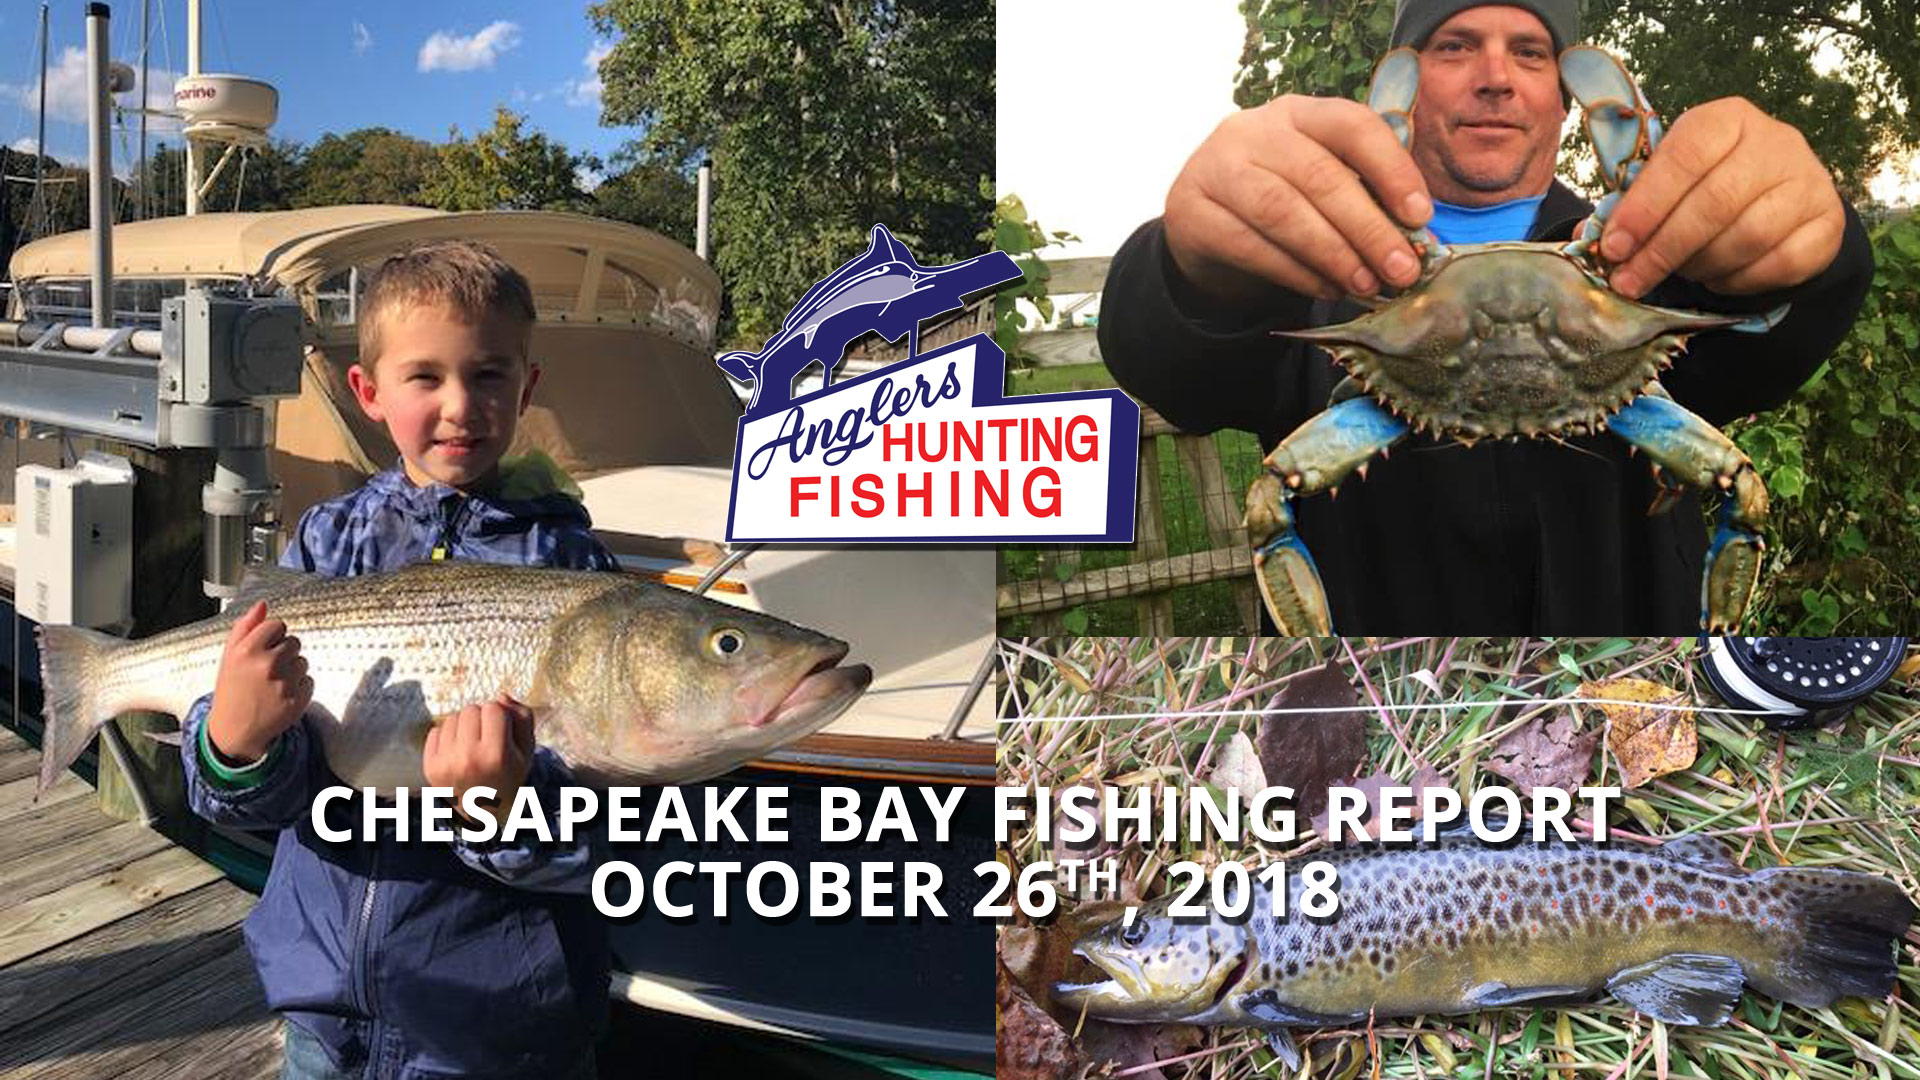 Chesapeake Bay Fishing Report - October 26th, 2018